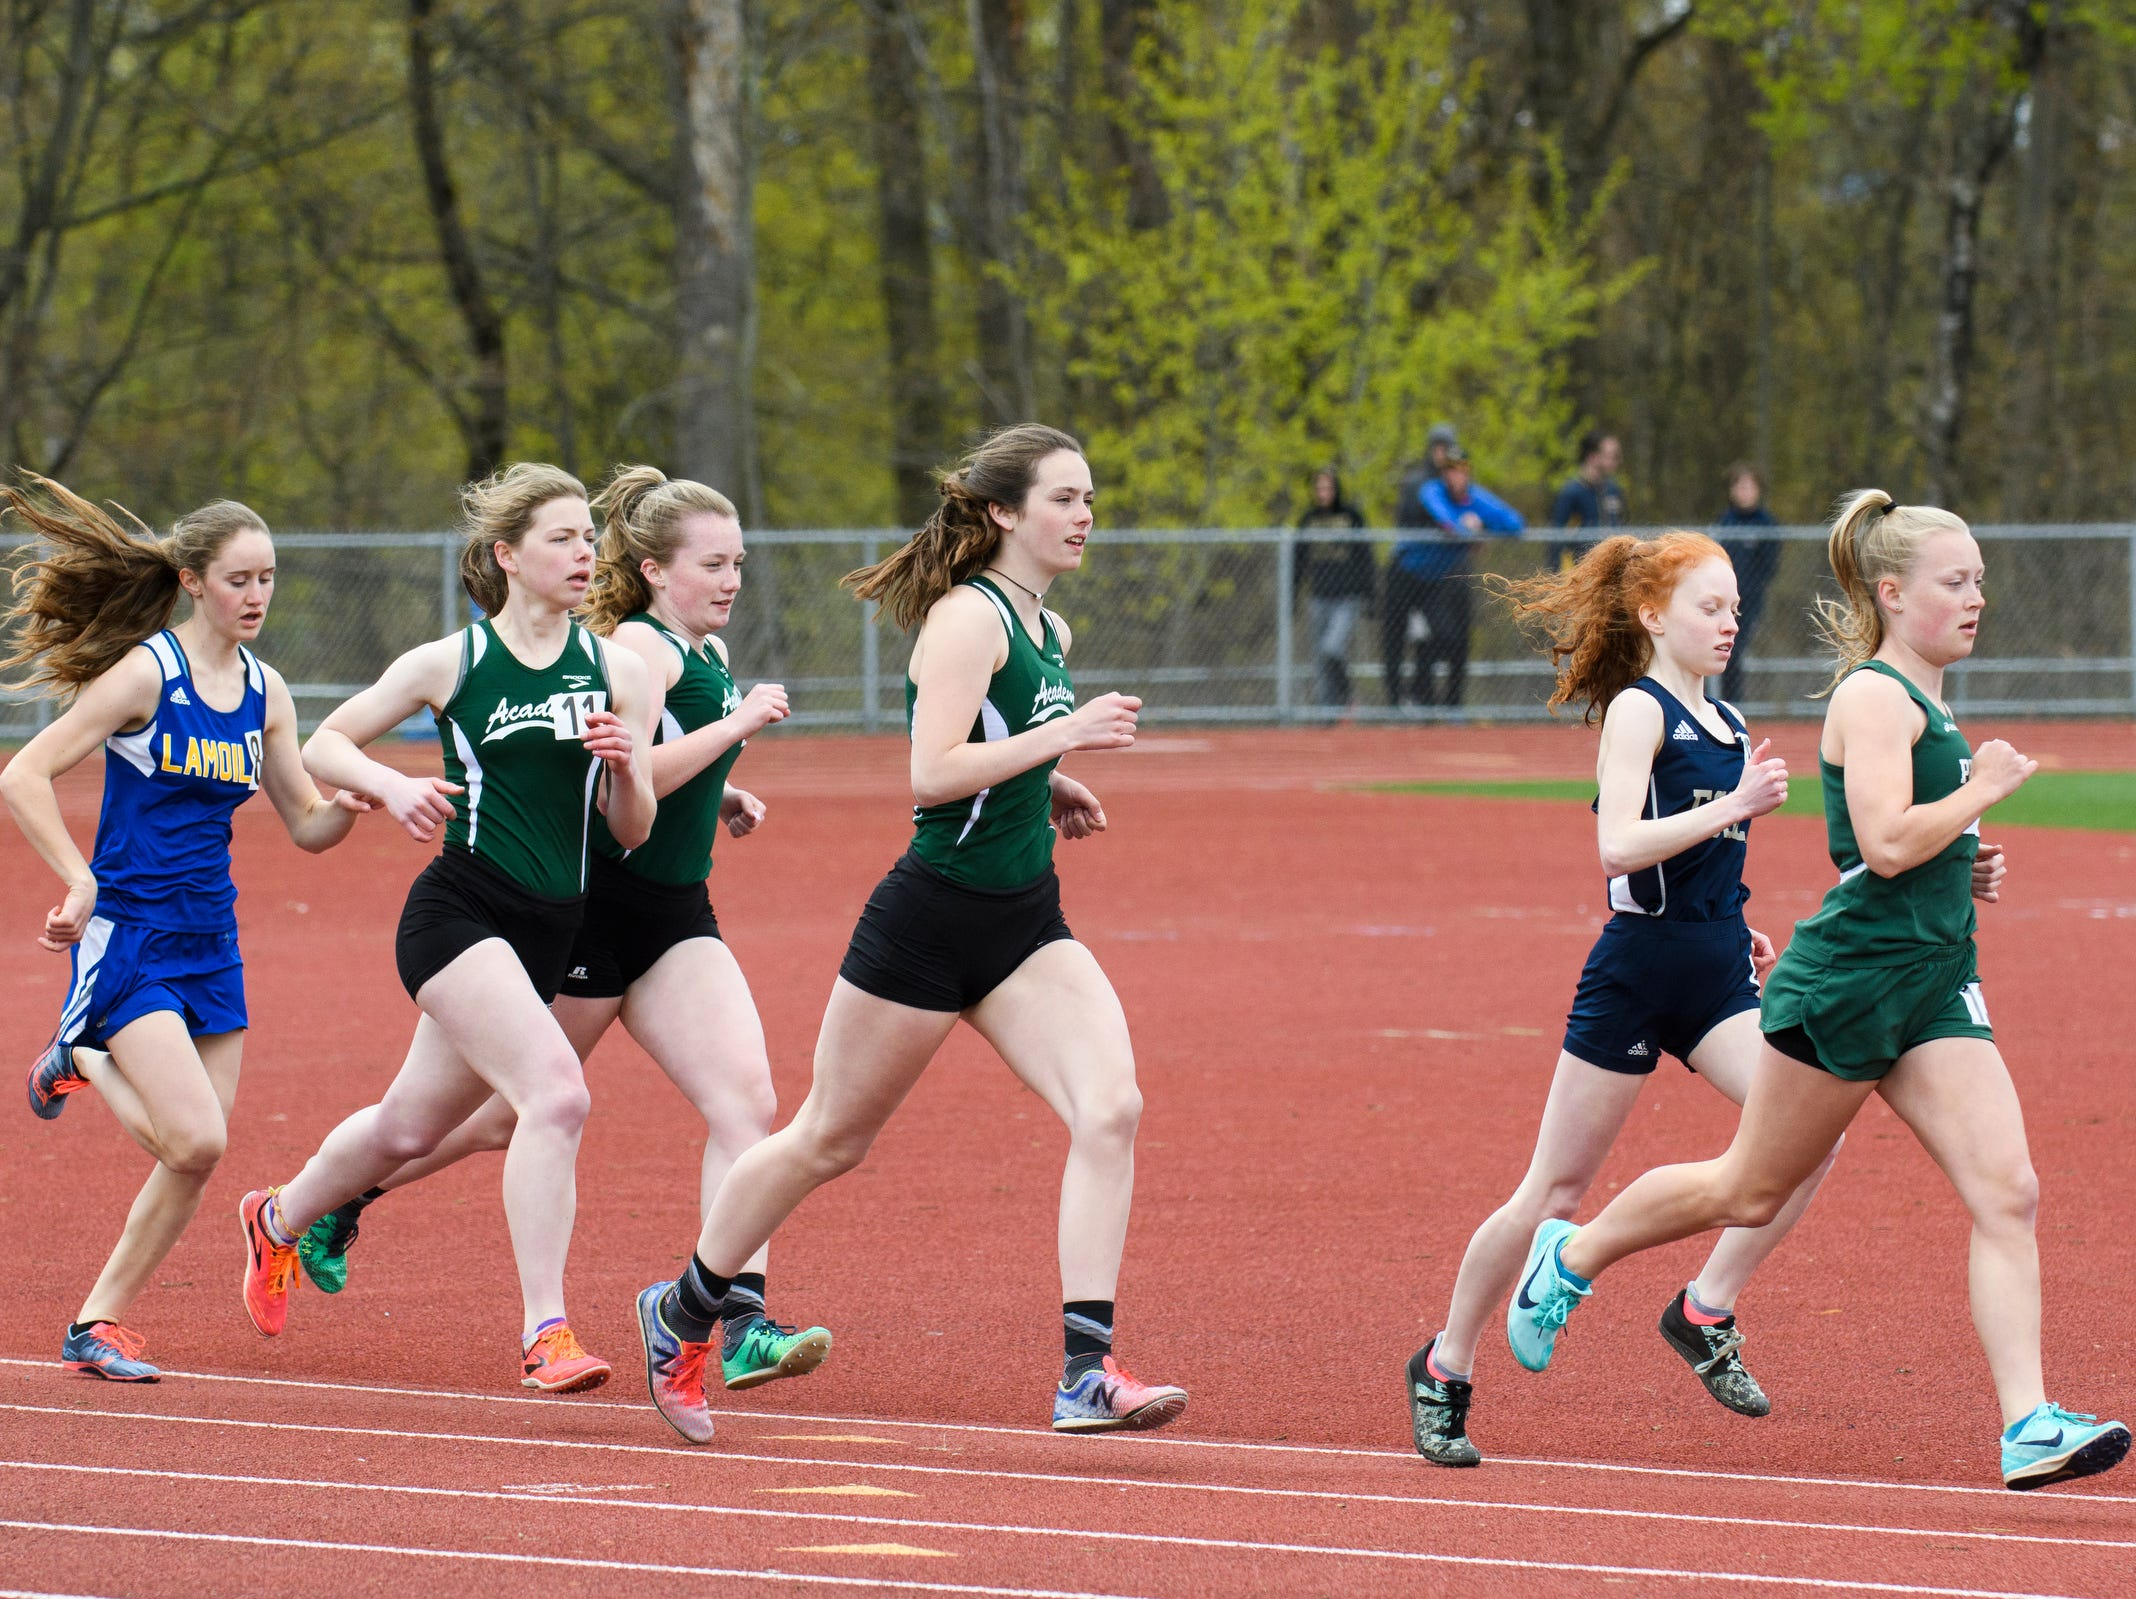 Girls compete in the 1500m during the Burlington Invitational high school track and field meet at Buck Hard Field on Saturday May 11, 2019 in Burlington, Vermont.